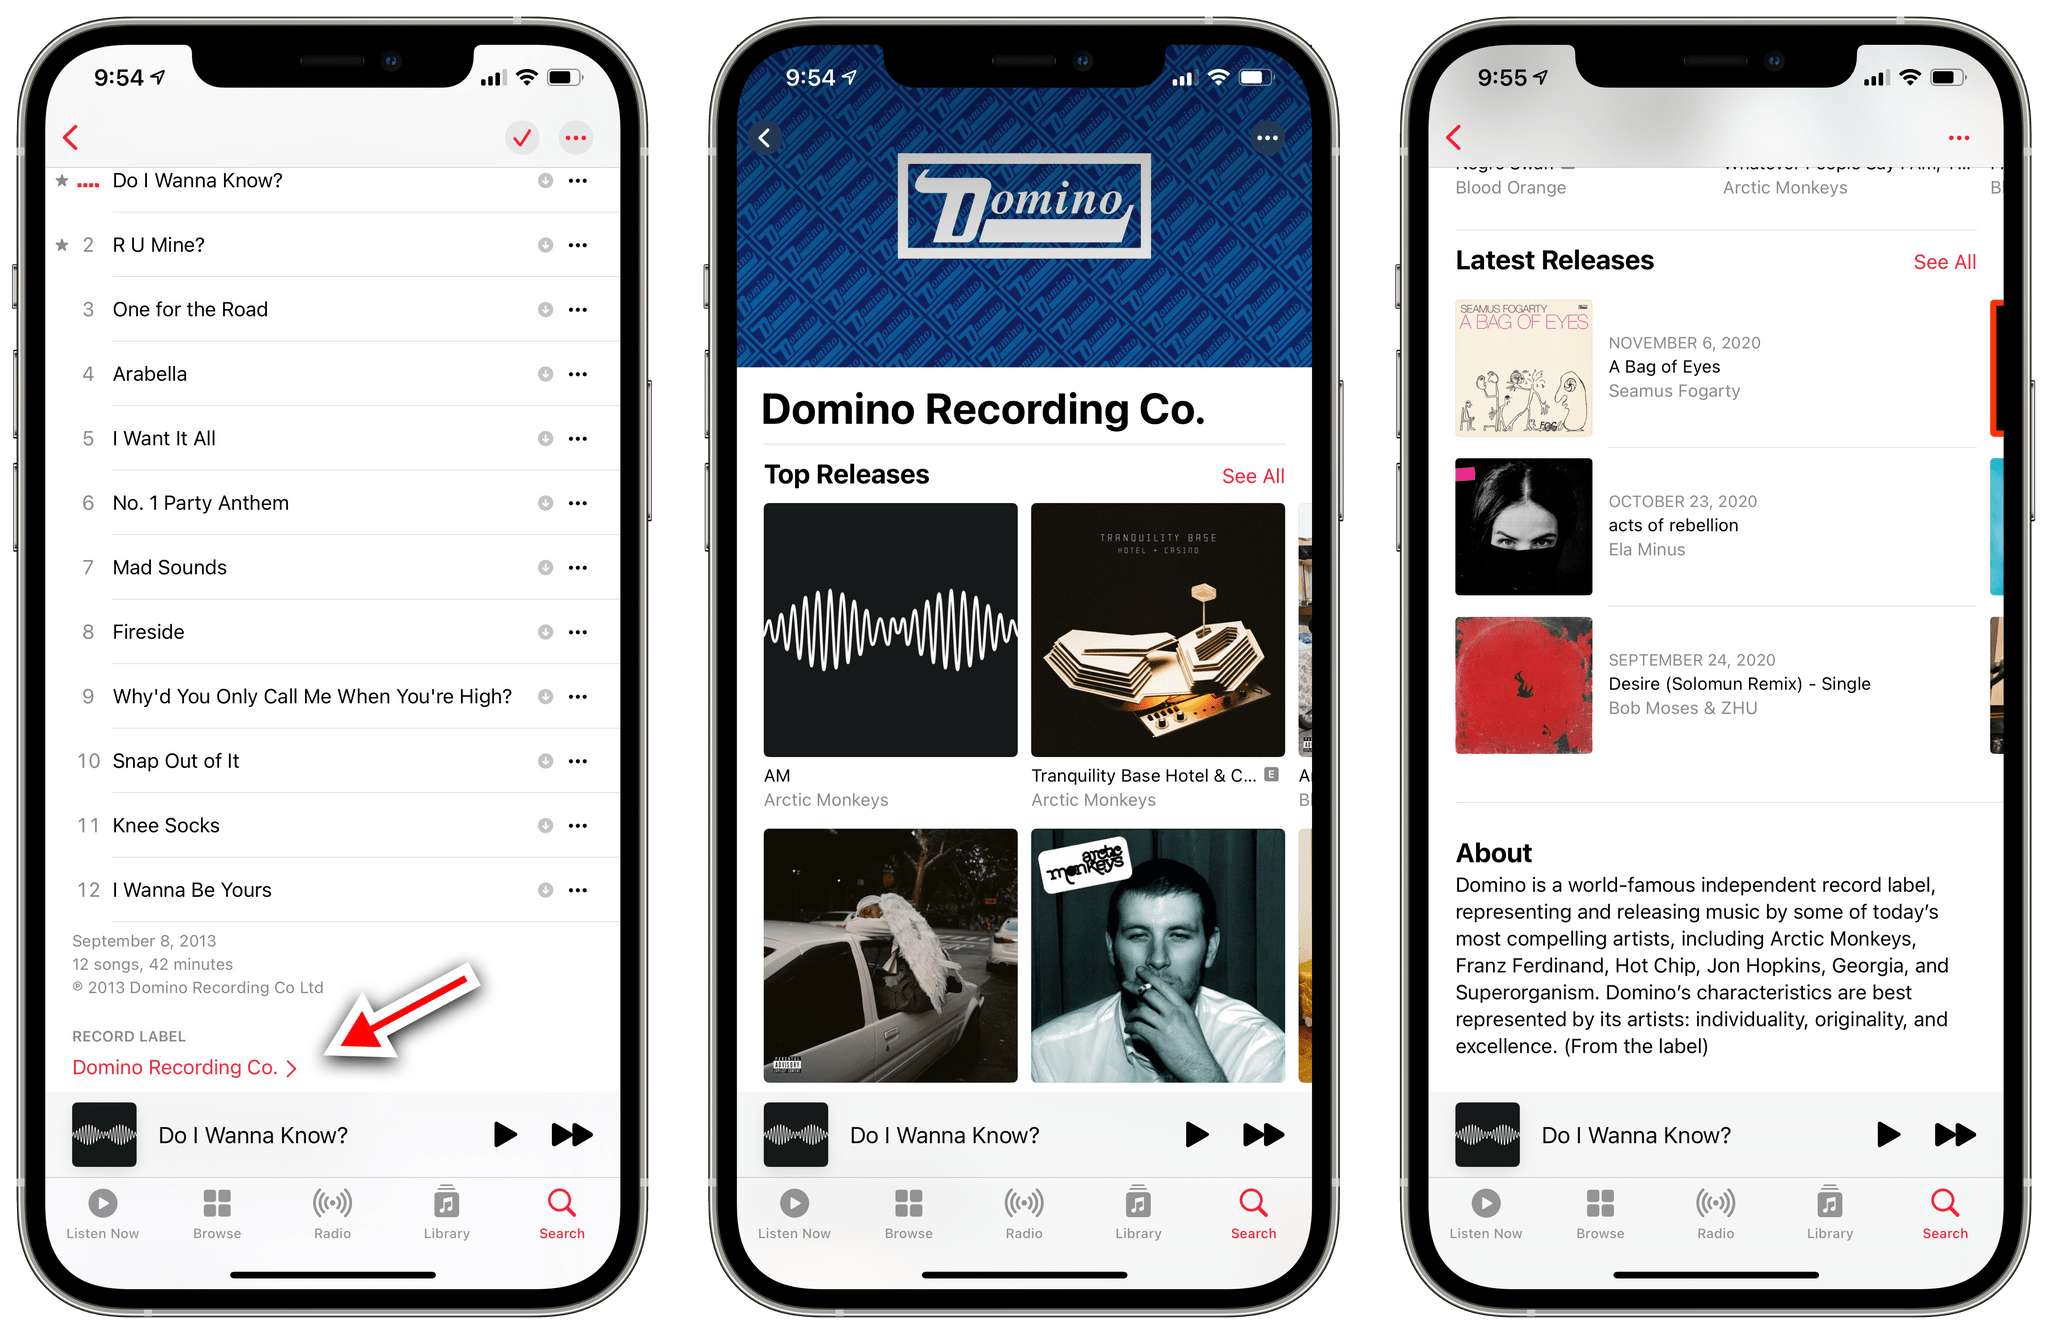 New record label pages in iOS 14.5.